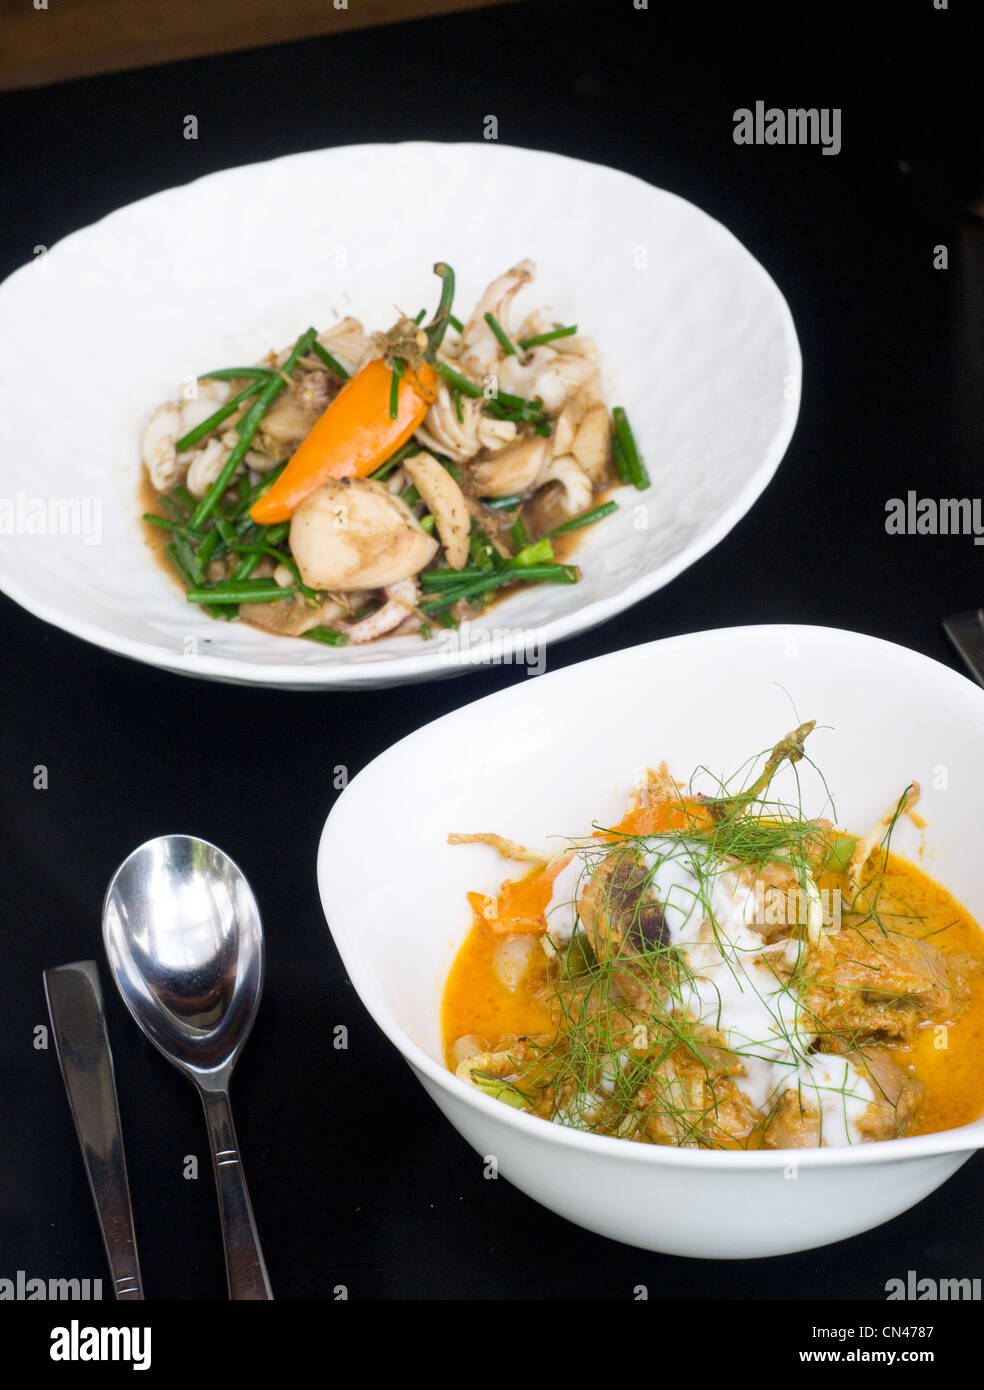 Thai food, yellow curry, kaeng carri, with chicken in the foreground Stock Photo